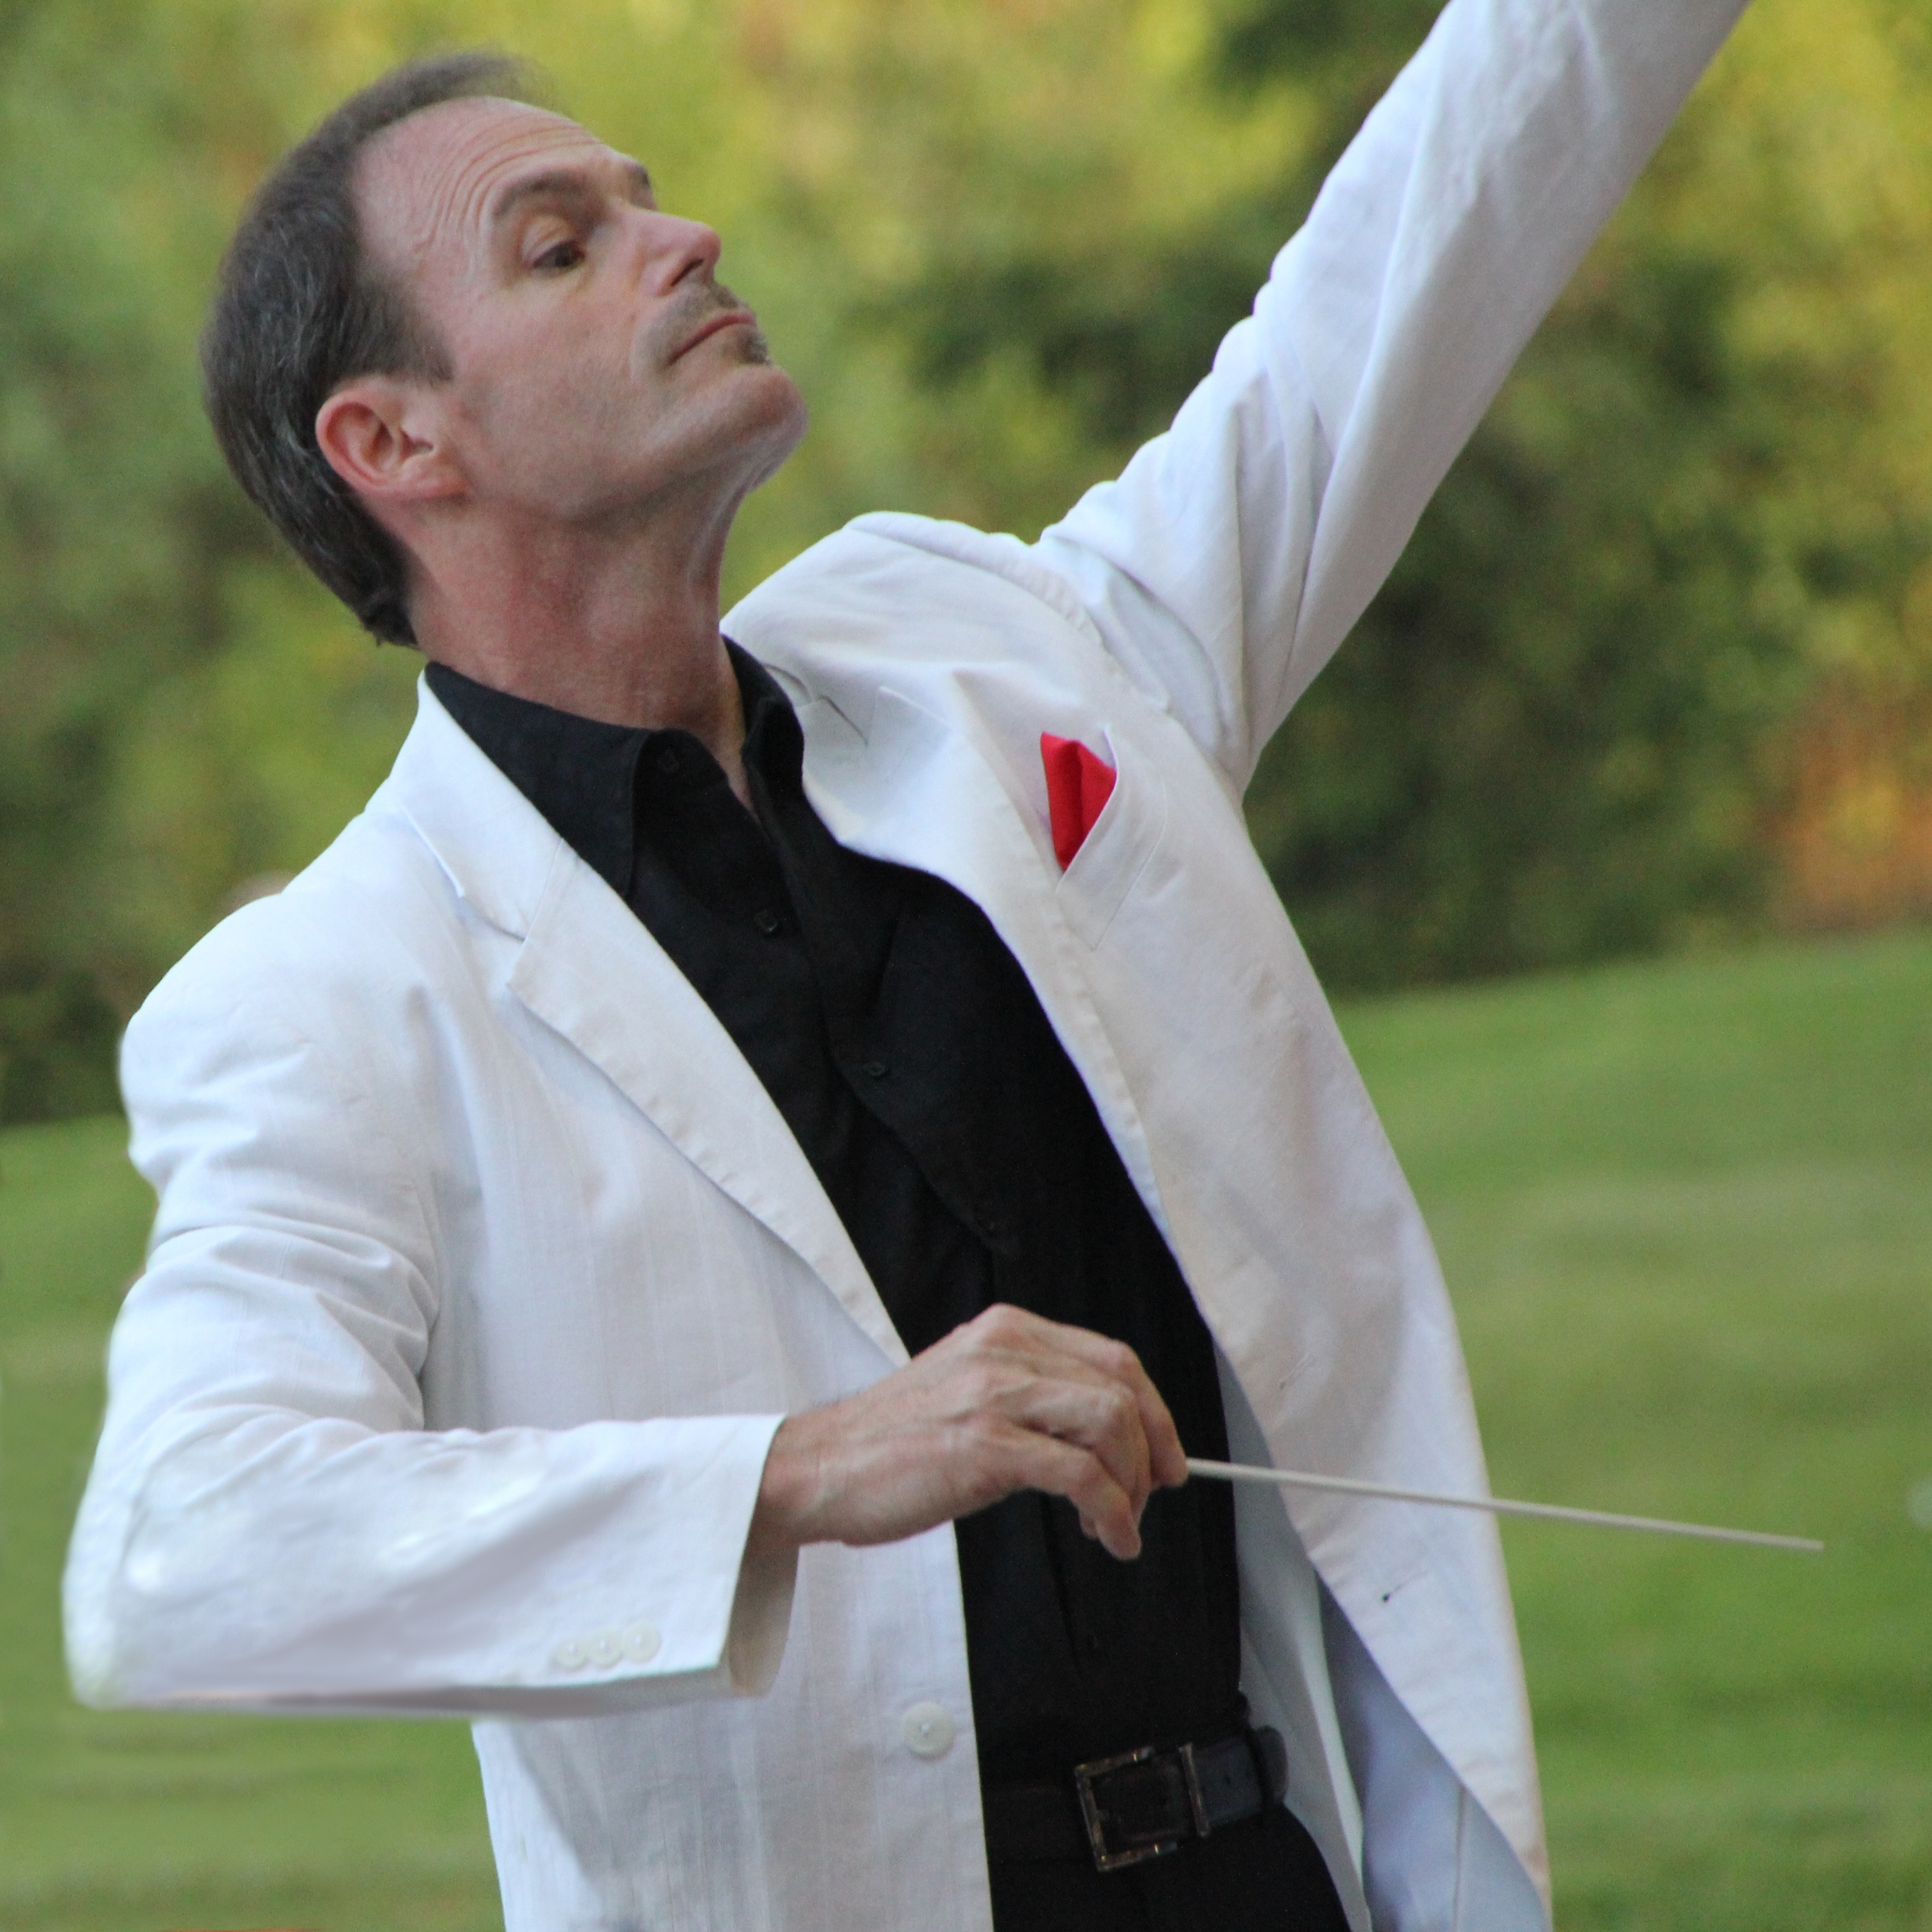 Philip Bauman conducts a summer pops concert